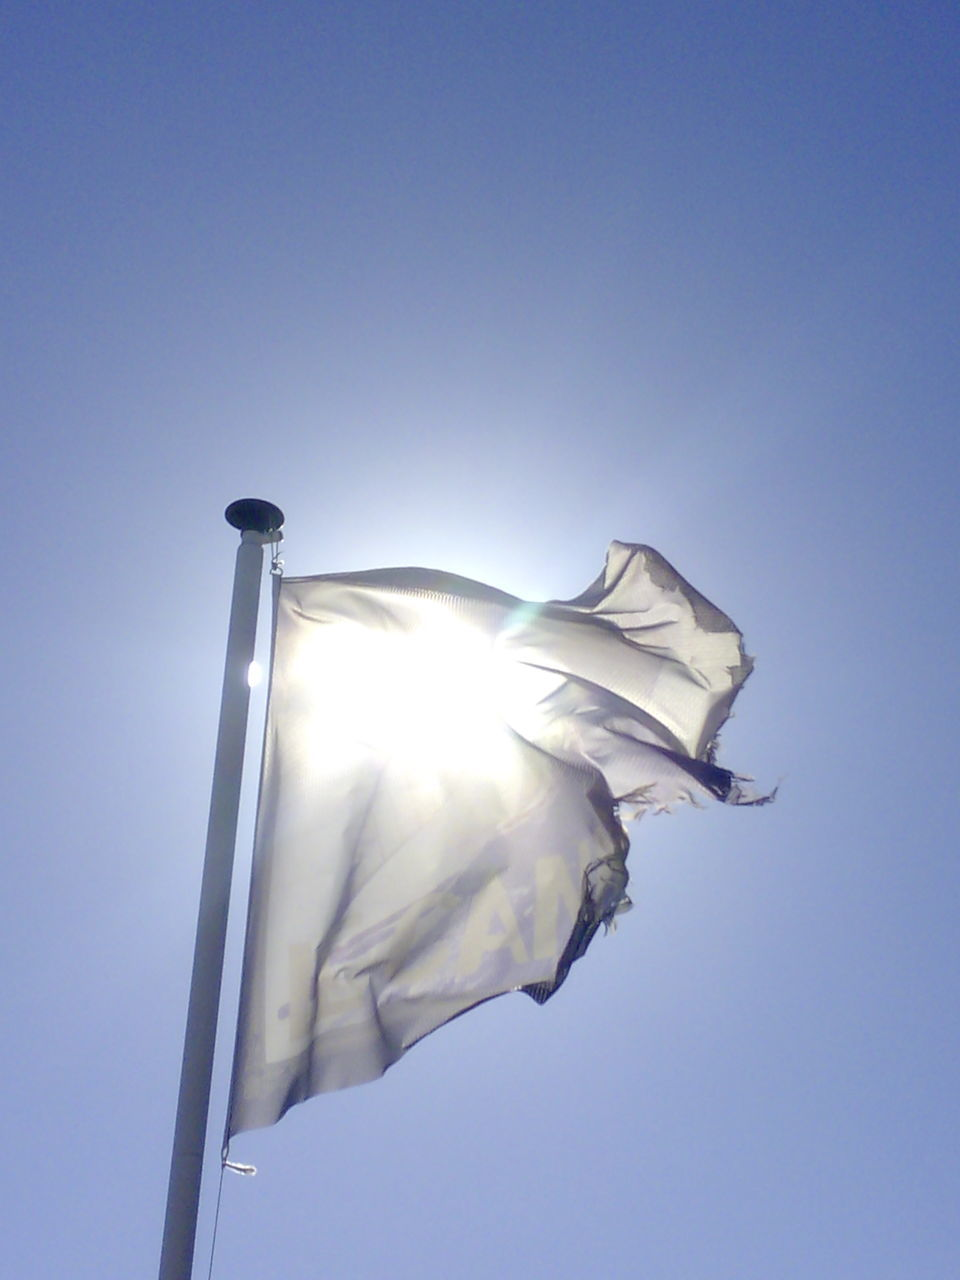 low angle view, flag, copy space, clear sky, no people, outdoors, day, blue, sunlight, patriotism, statue, sky, close-up